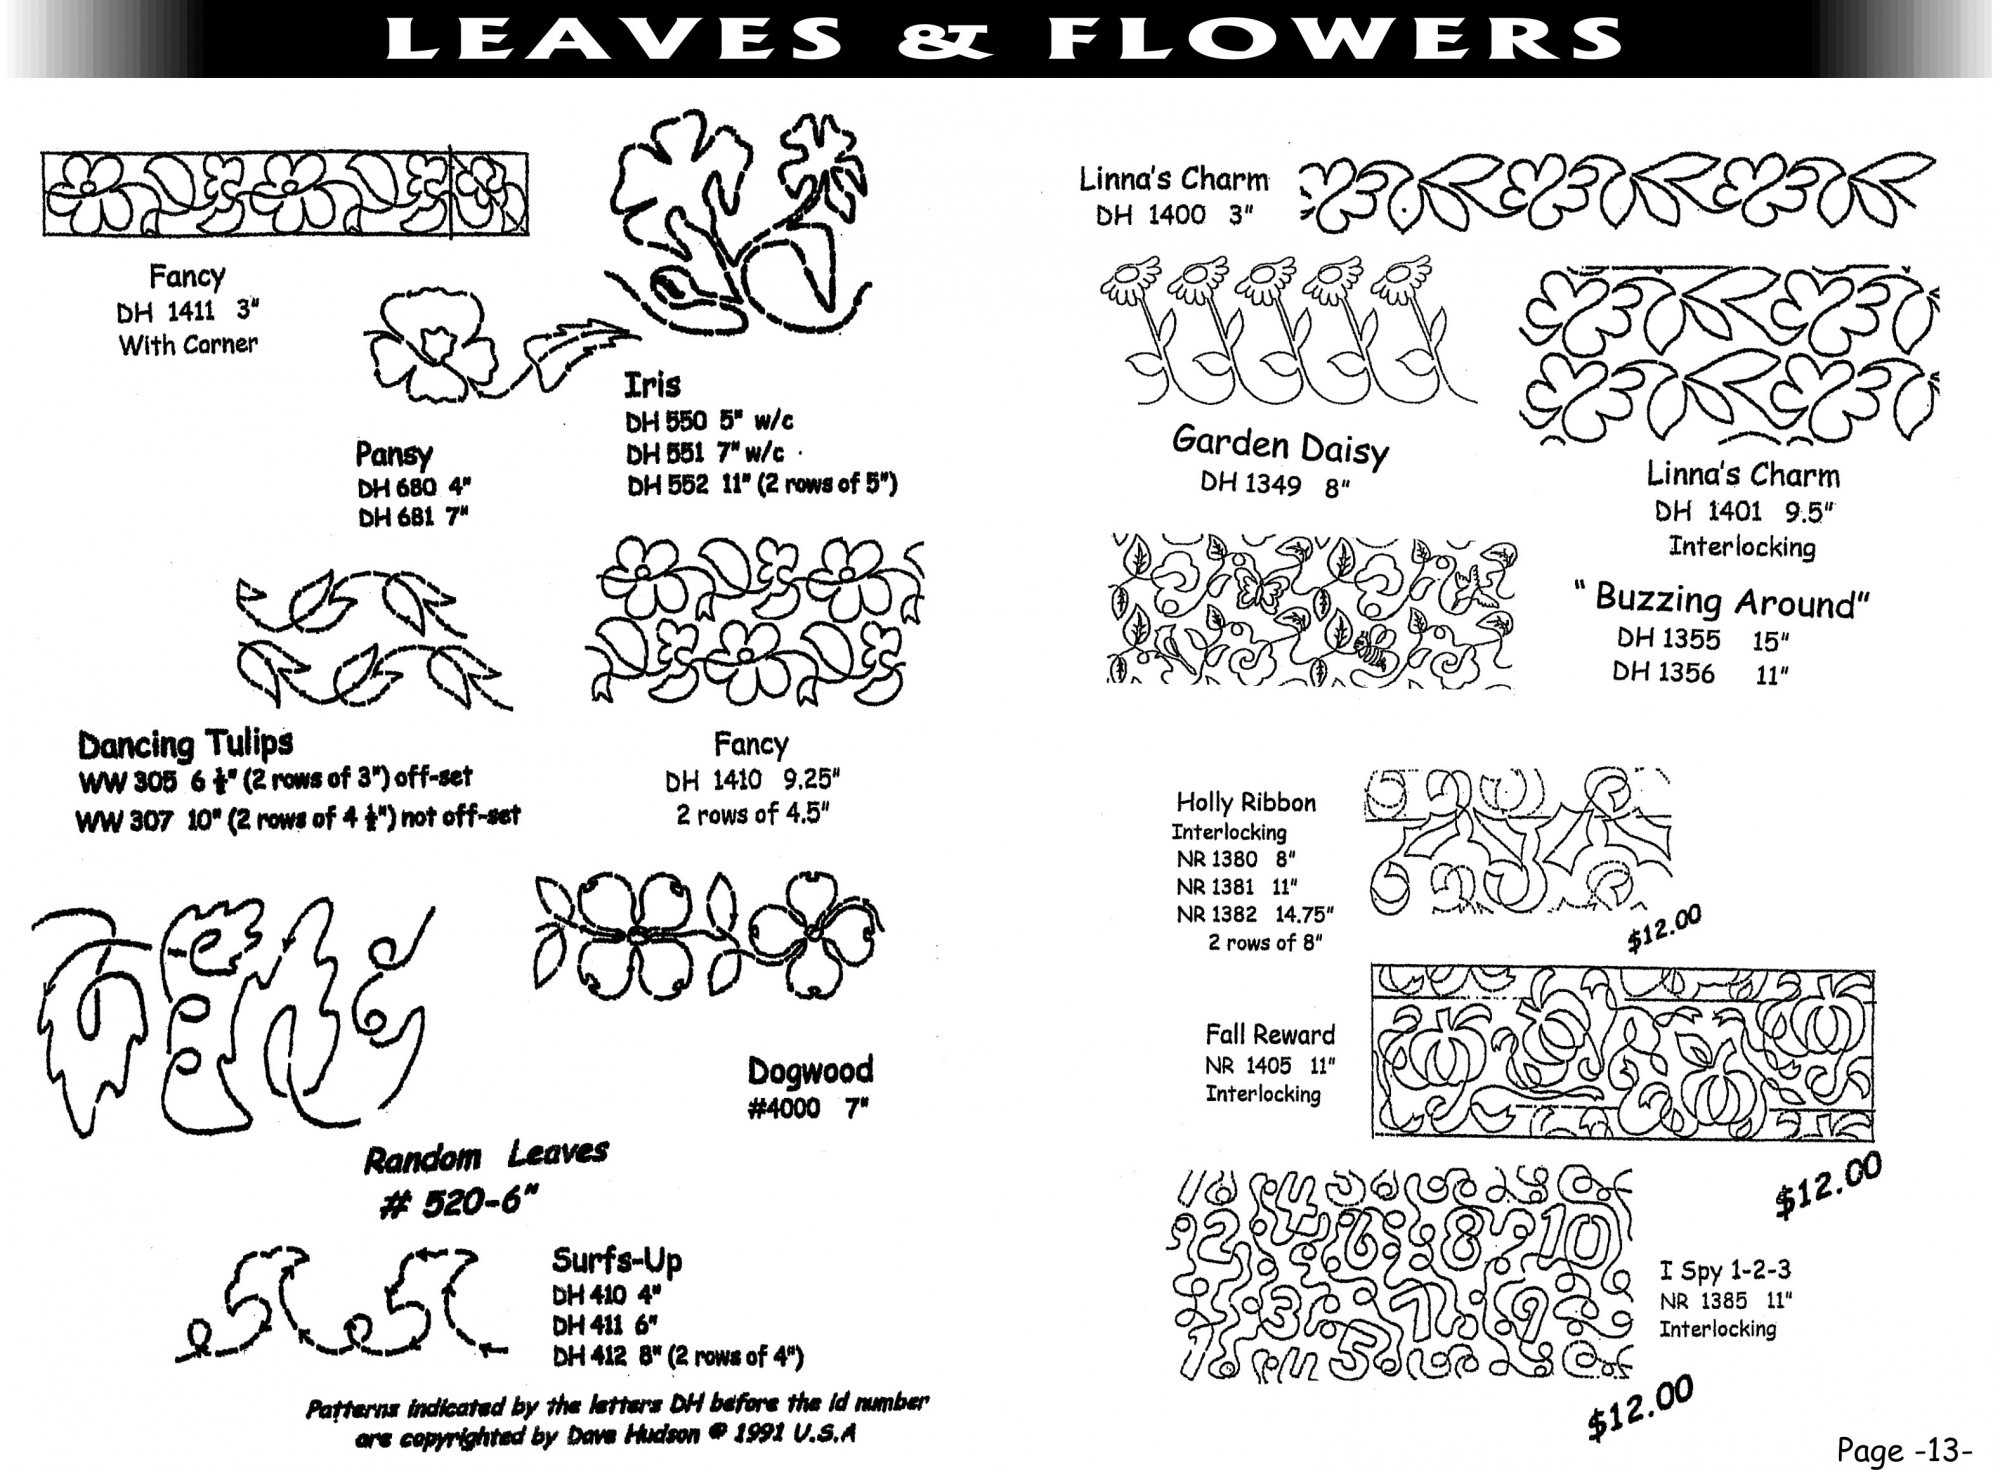 Pantographs-Leaves&Flowers-B- 6 1/2-12